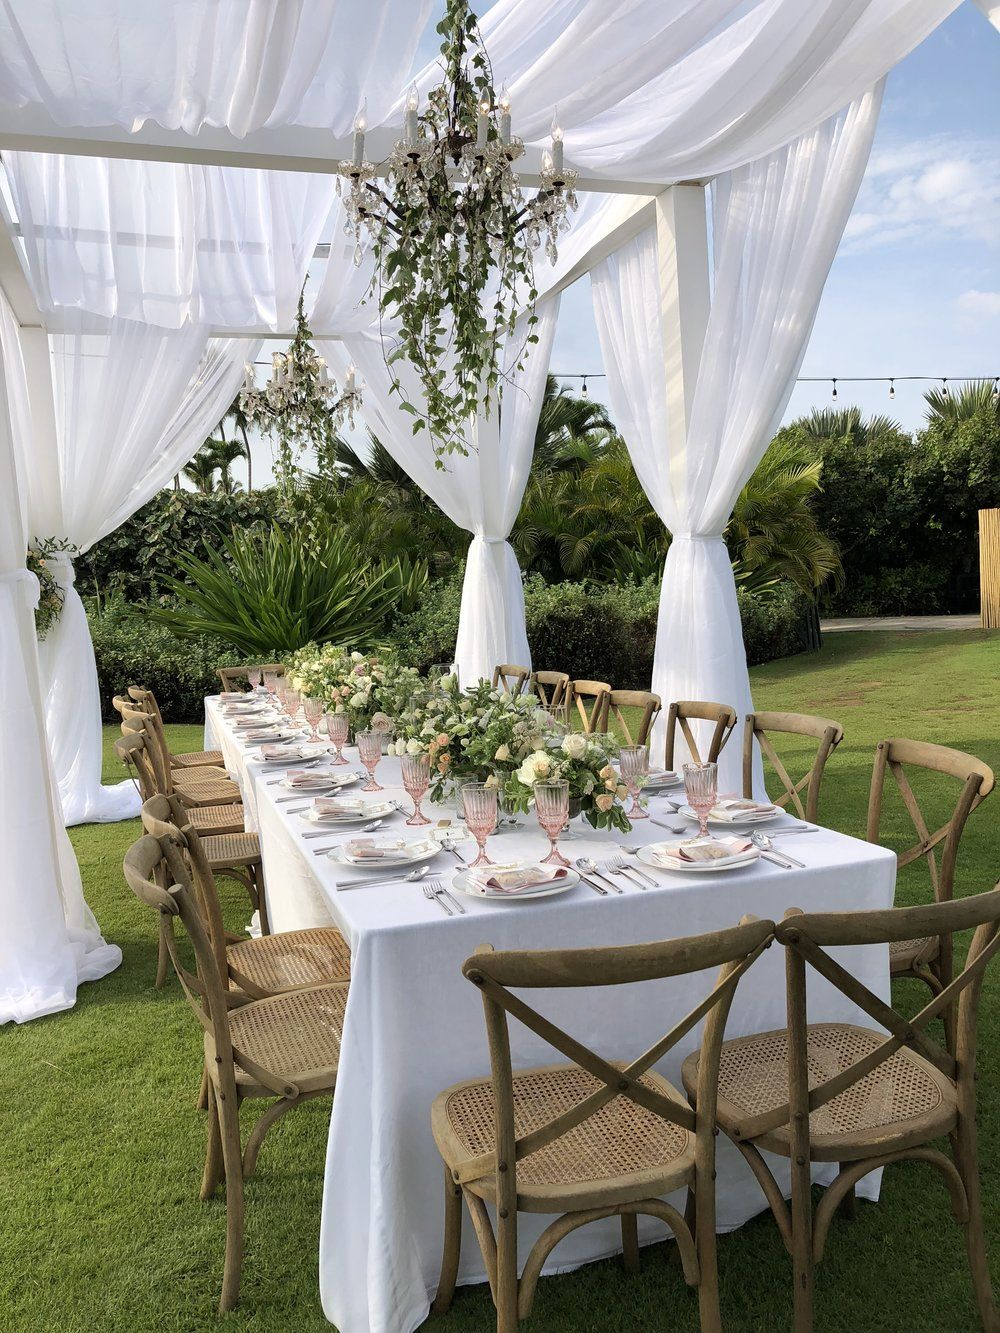 Ivory Dining Canopies Signature Boutique Event Rentals Maui Hawaii In 2020 Backyard Bridal Showers Wedding Canopy Outdoor Outdoor Dinner Parties